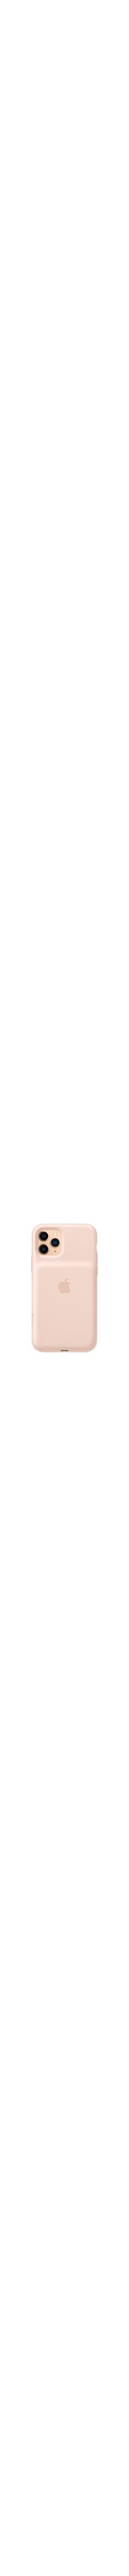 Apple Case for Apple iPhone 11 Pro Smartphone - Pink Sand